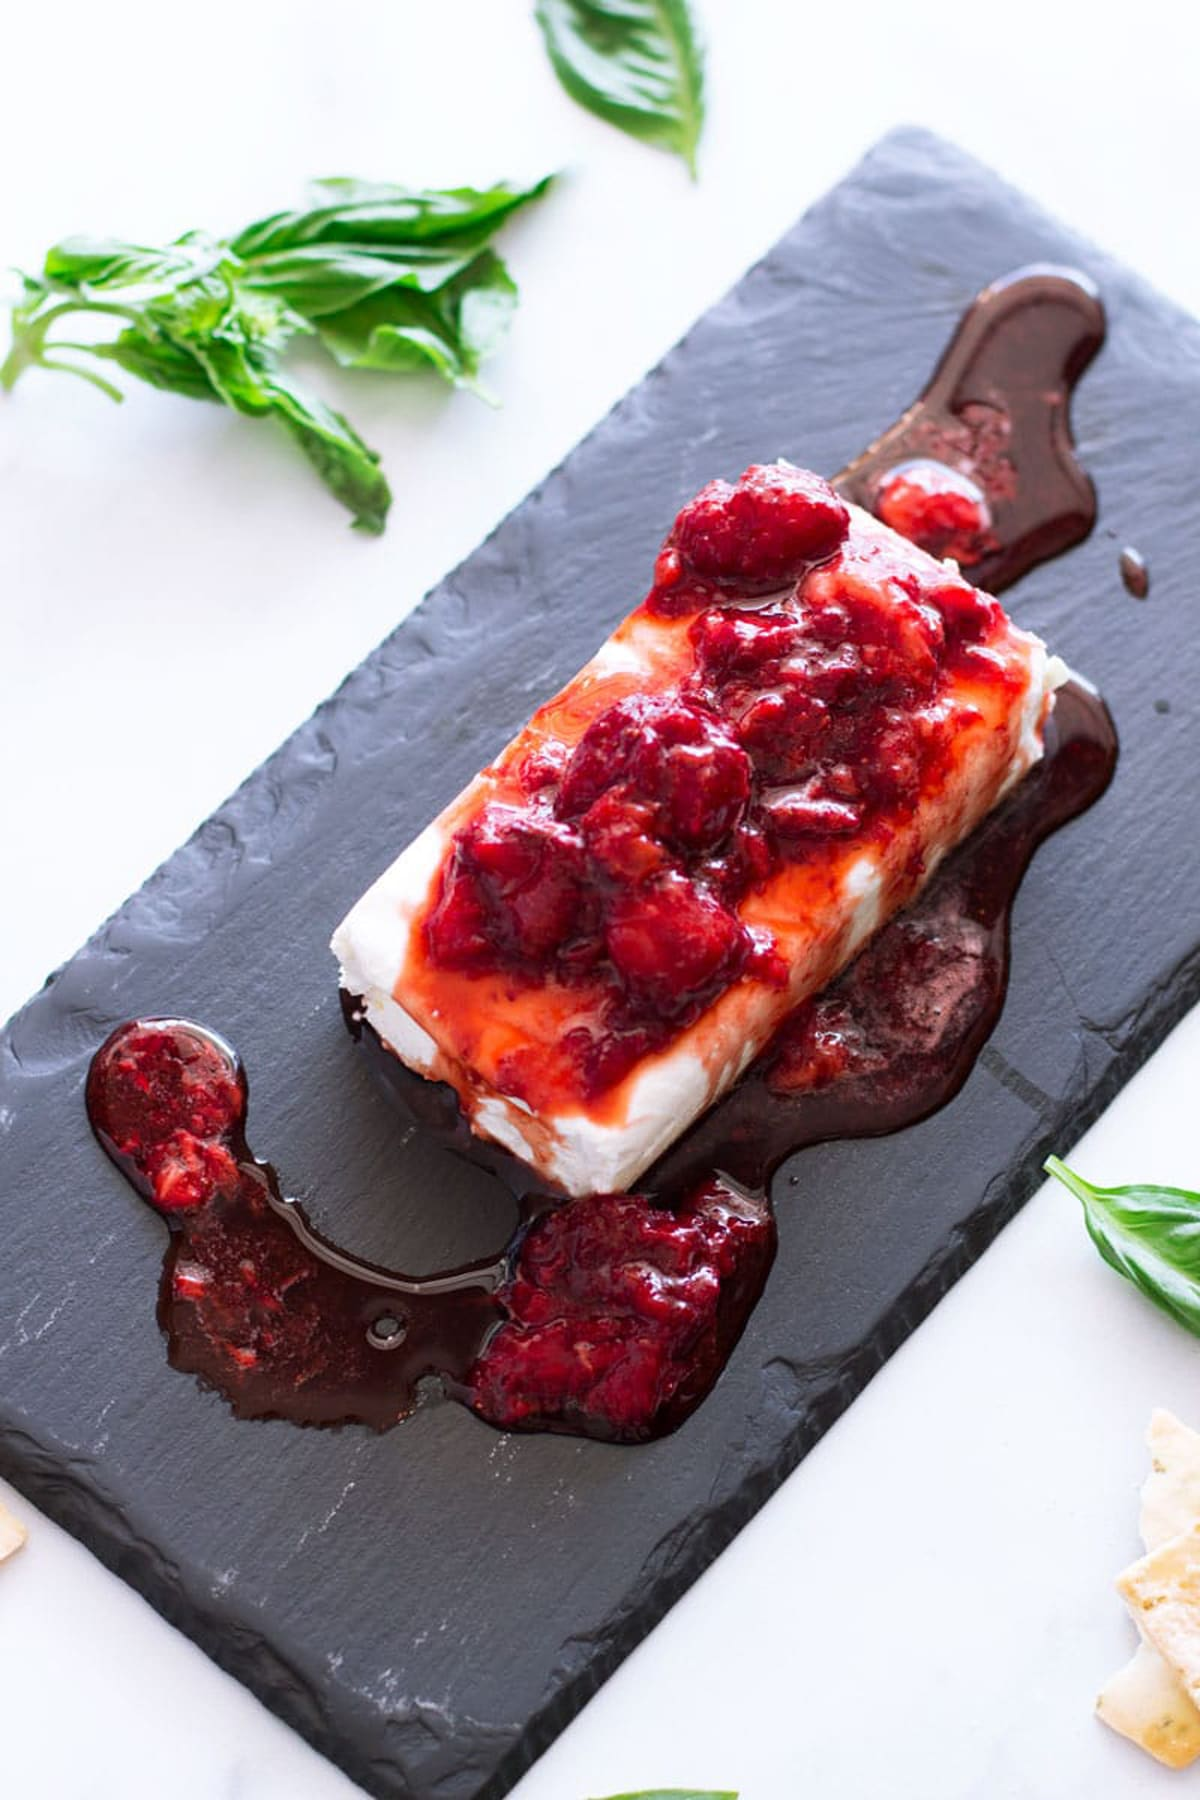 Strawberry sauce on cream cheese, basil on table.